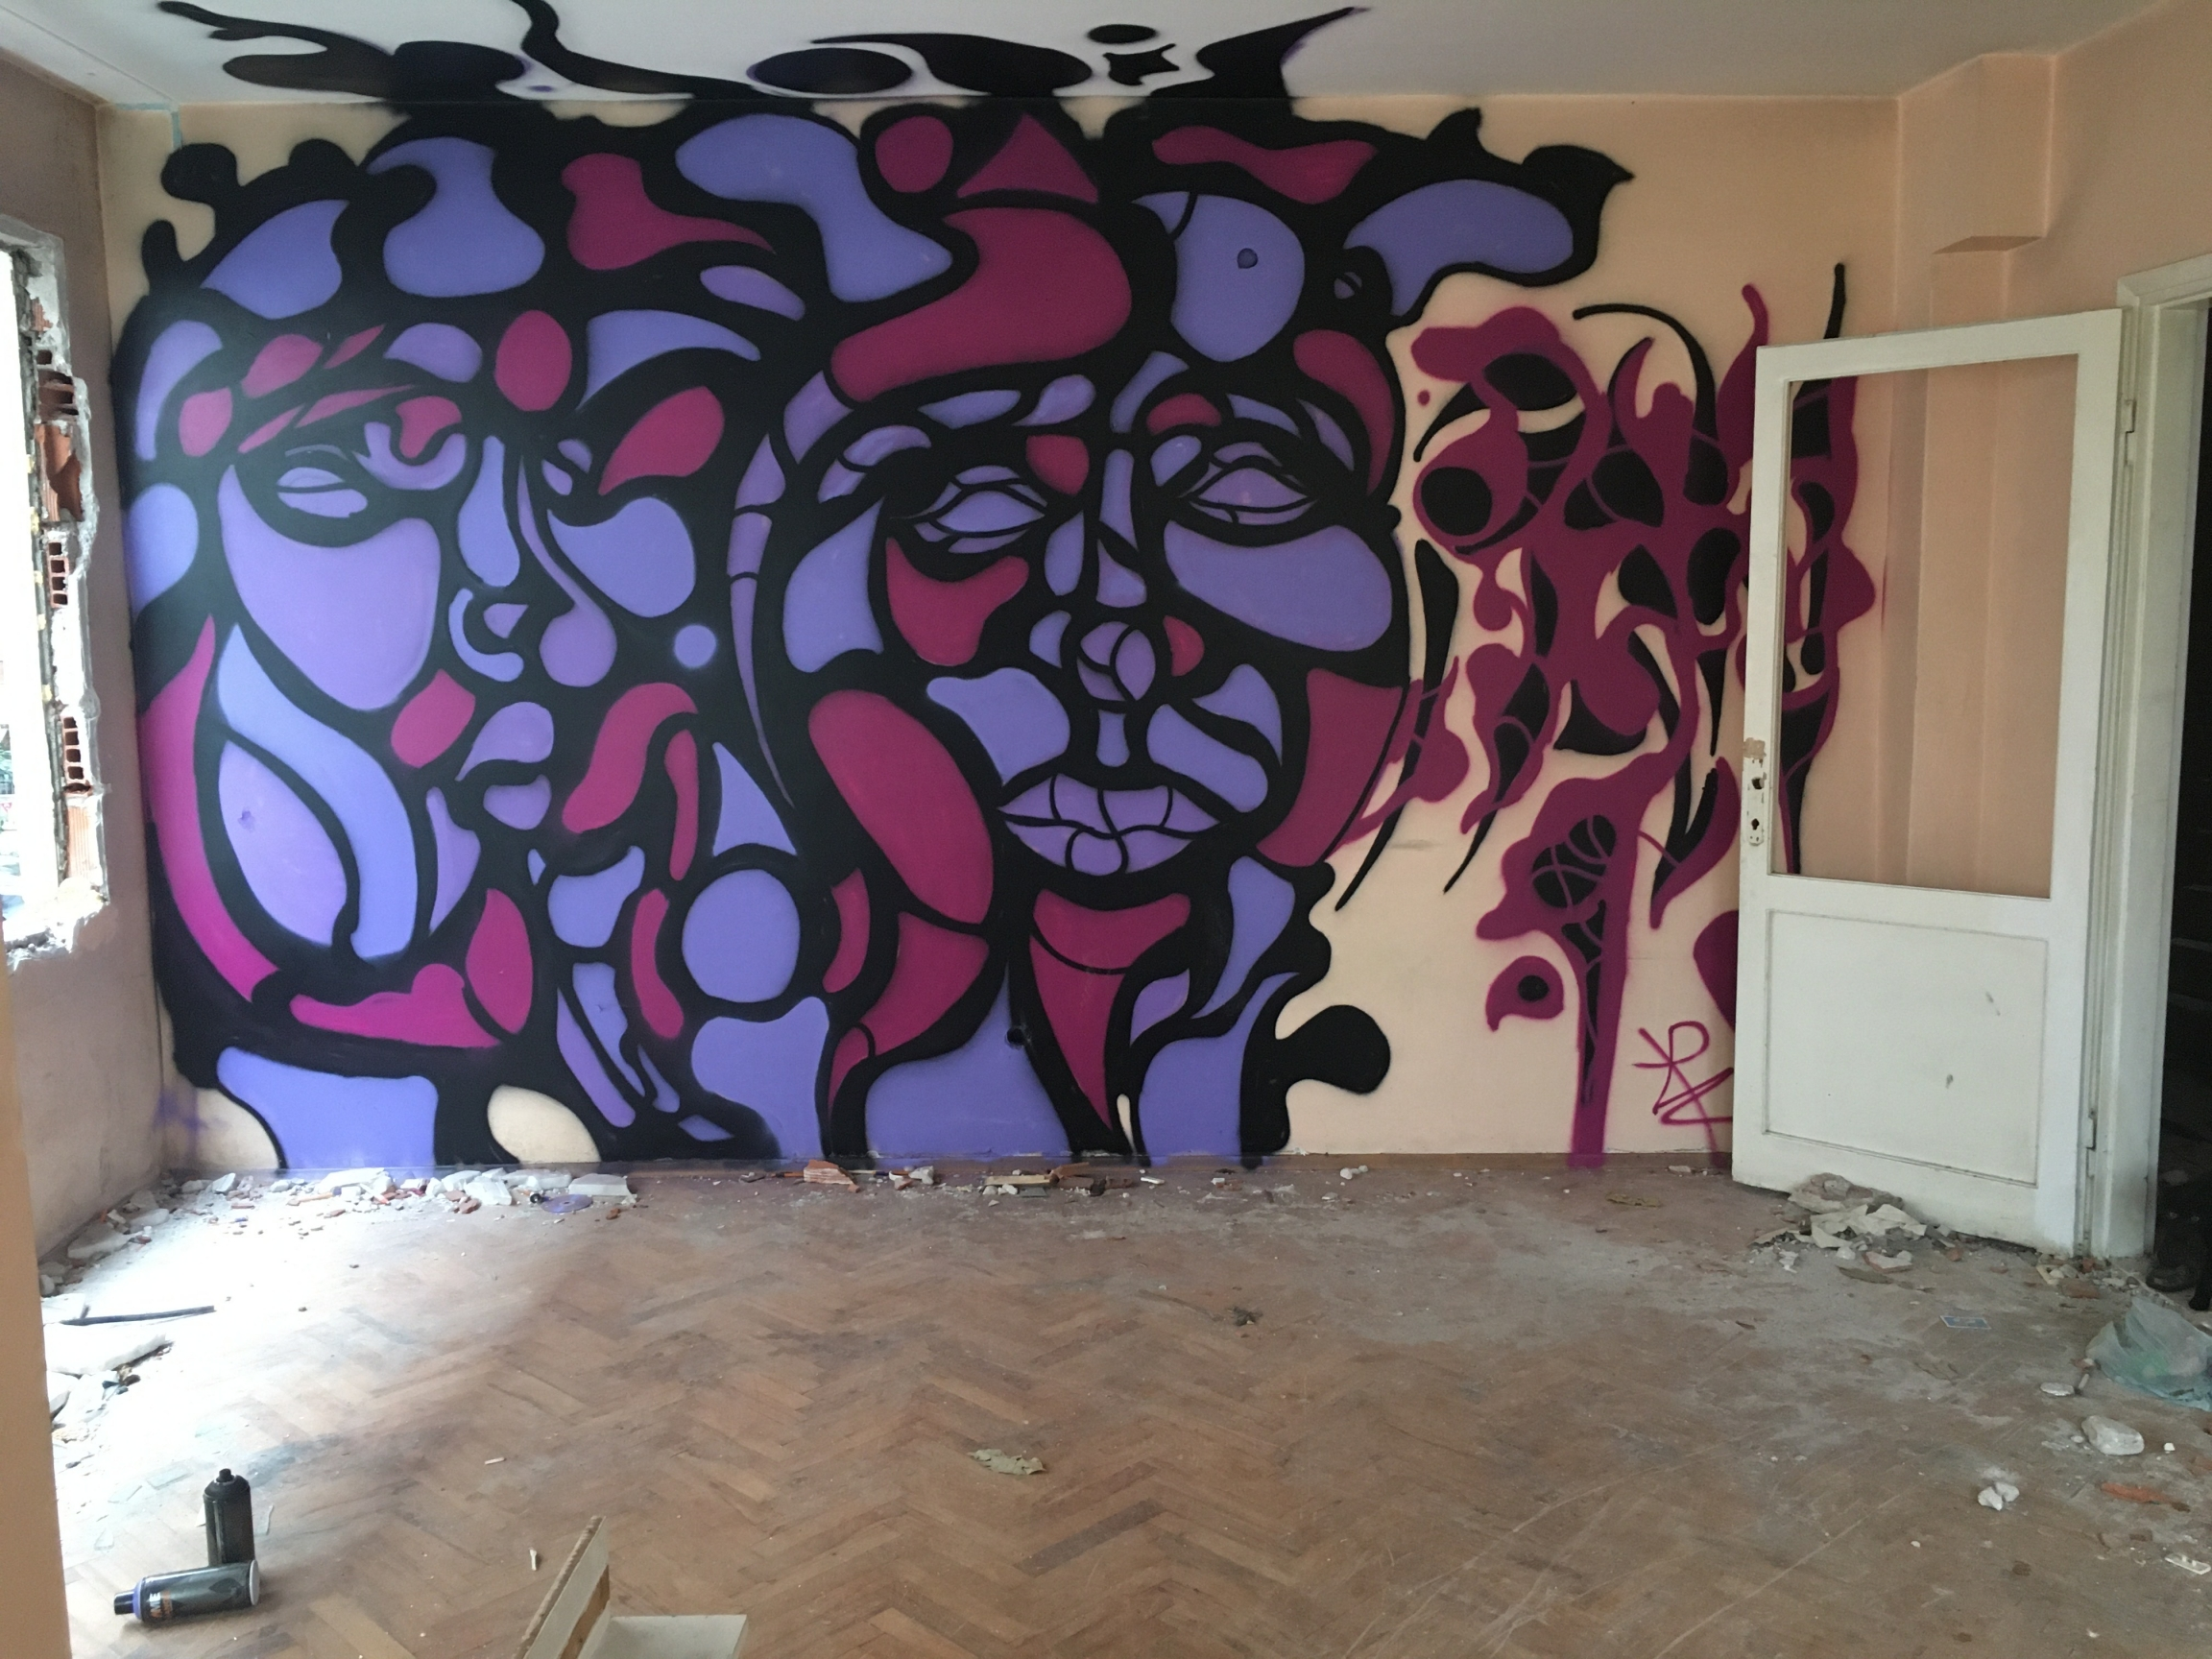 """This is """"Mikrotopya,"""" a collection of installations, graffiti art and sculptures of found items created by 16 artists in an empty, four-story apartment building slated for demolition as part of an extensive urban renewal project. The art can be found thro"""